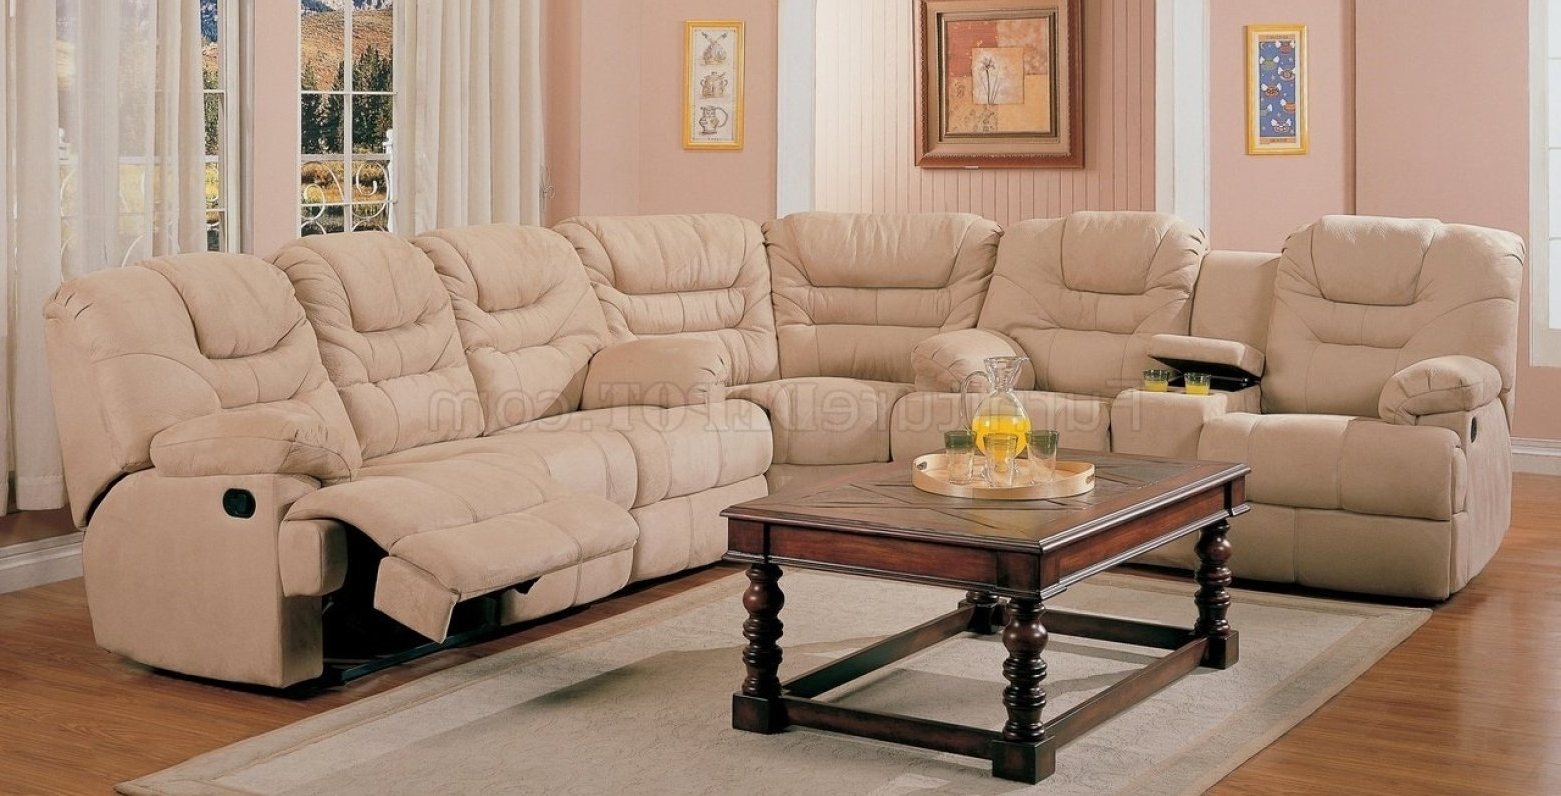 Most Recent Tulsa Sectional Sofas Pertaining To Stylish Sectional Sofas Tulsa Ok – Buildsimplehome (View 5 of 15)